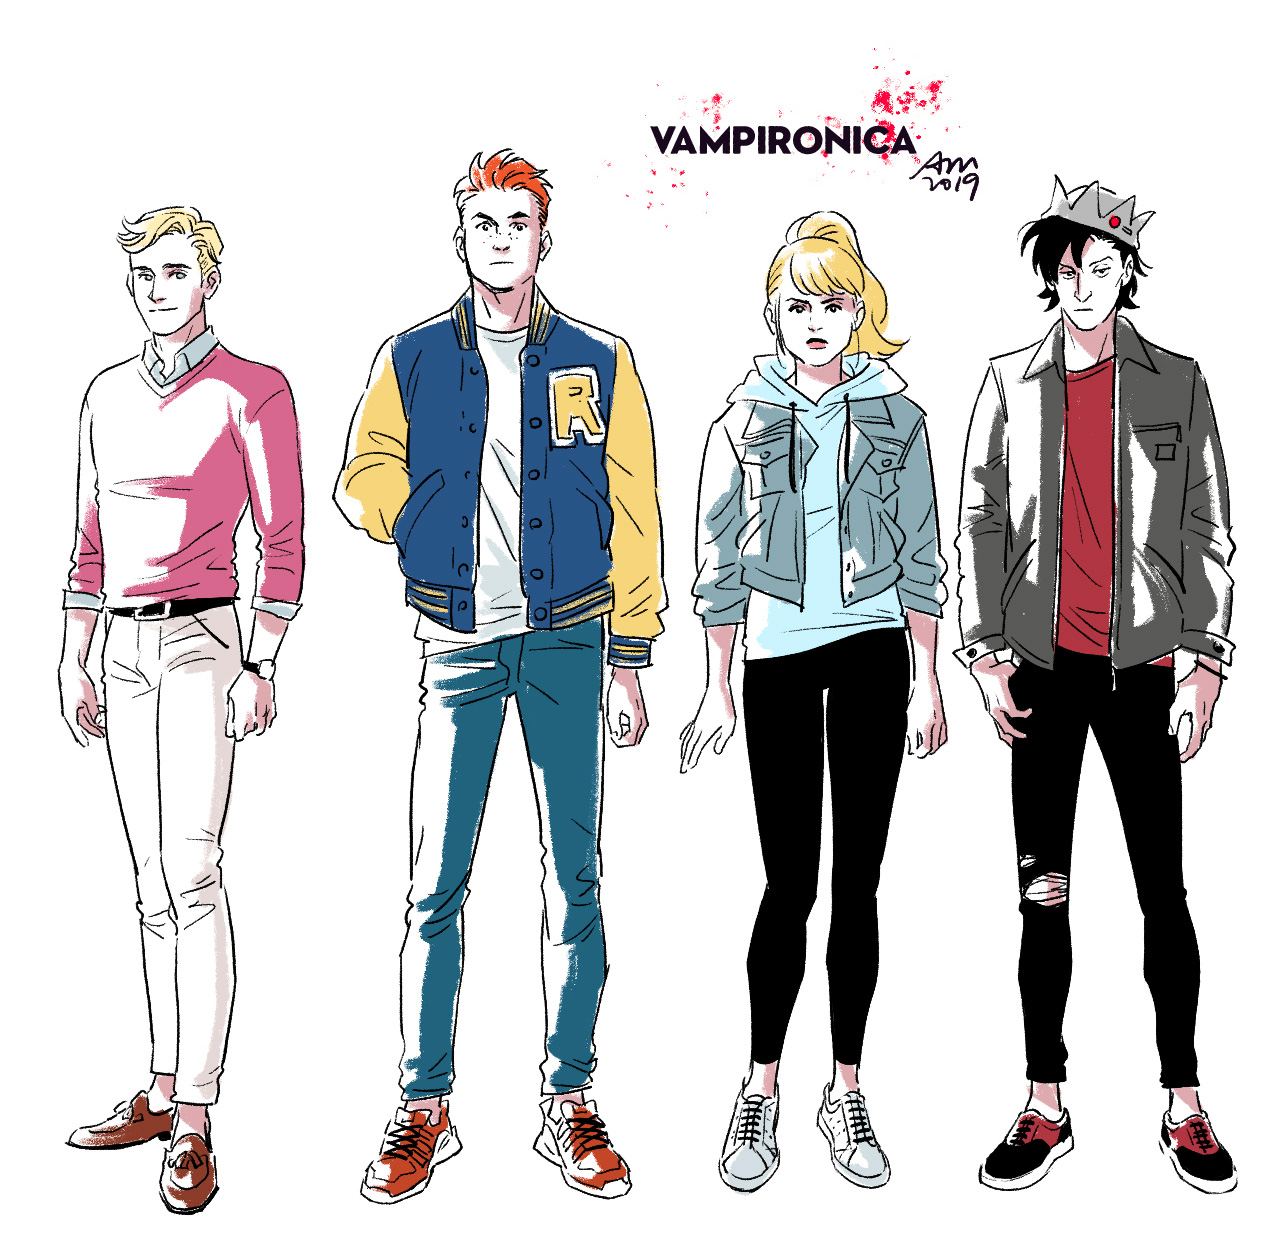 Drawings of the characters from the series, Archie Comics 2019.